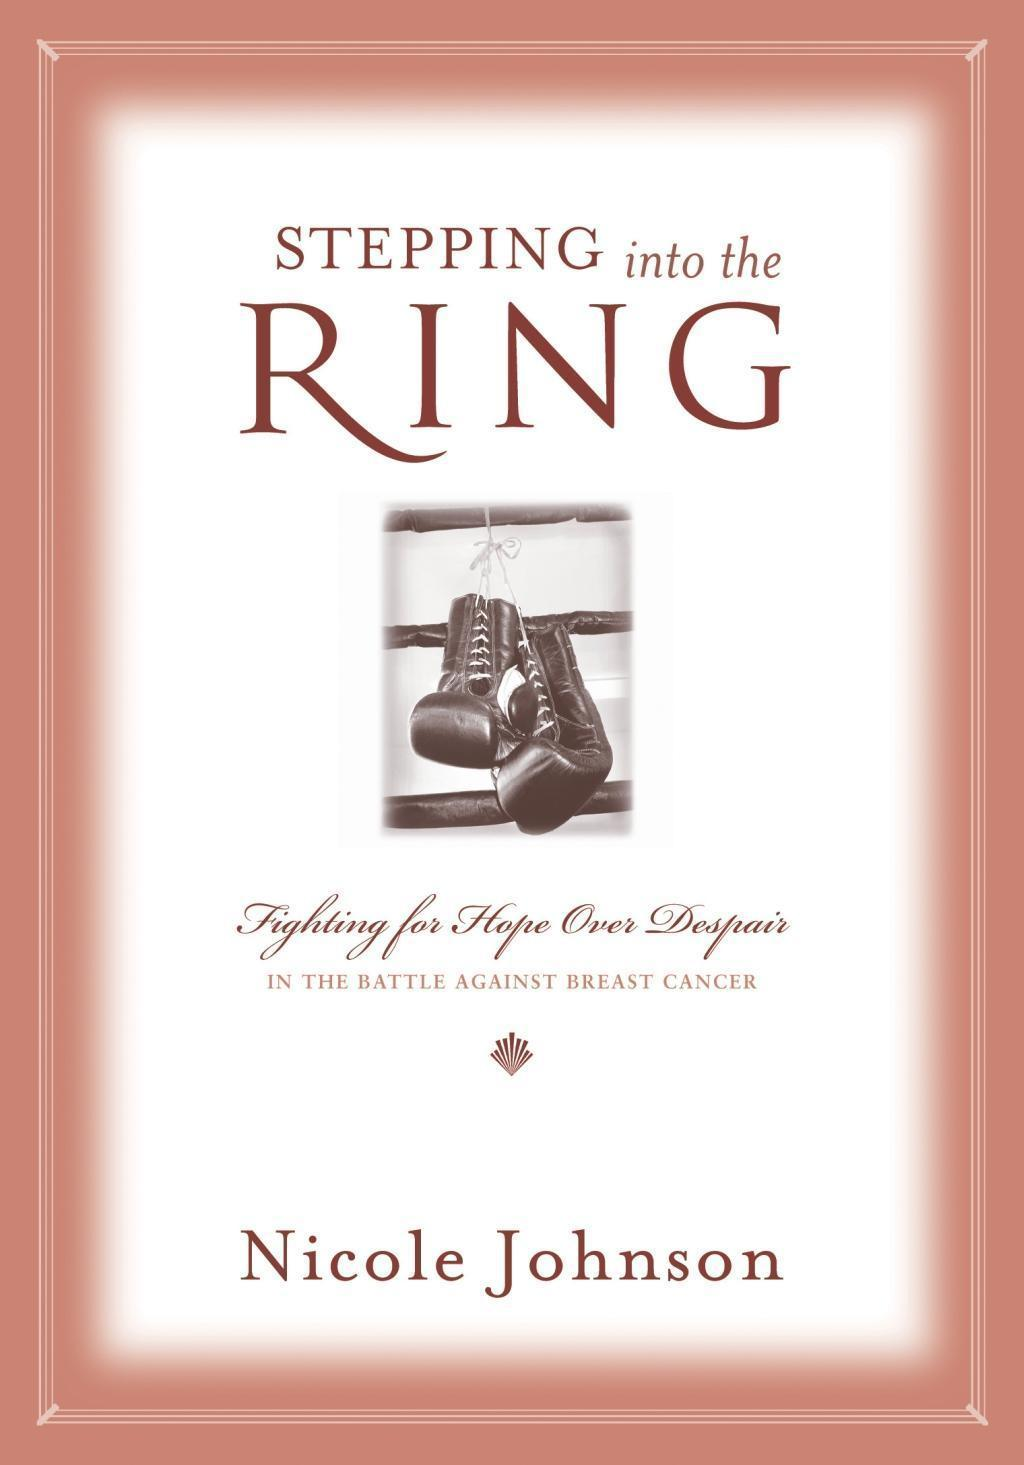 Stepping into the Ring